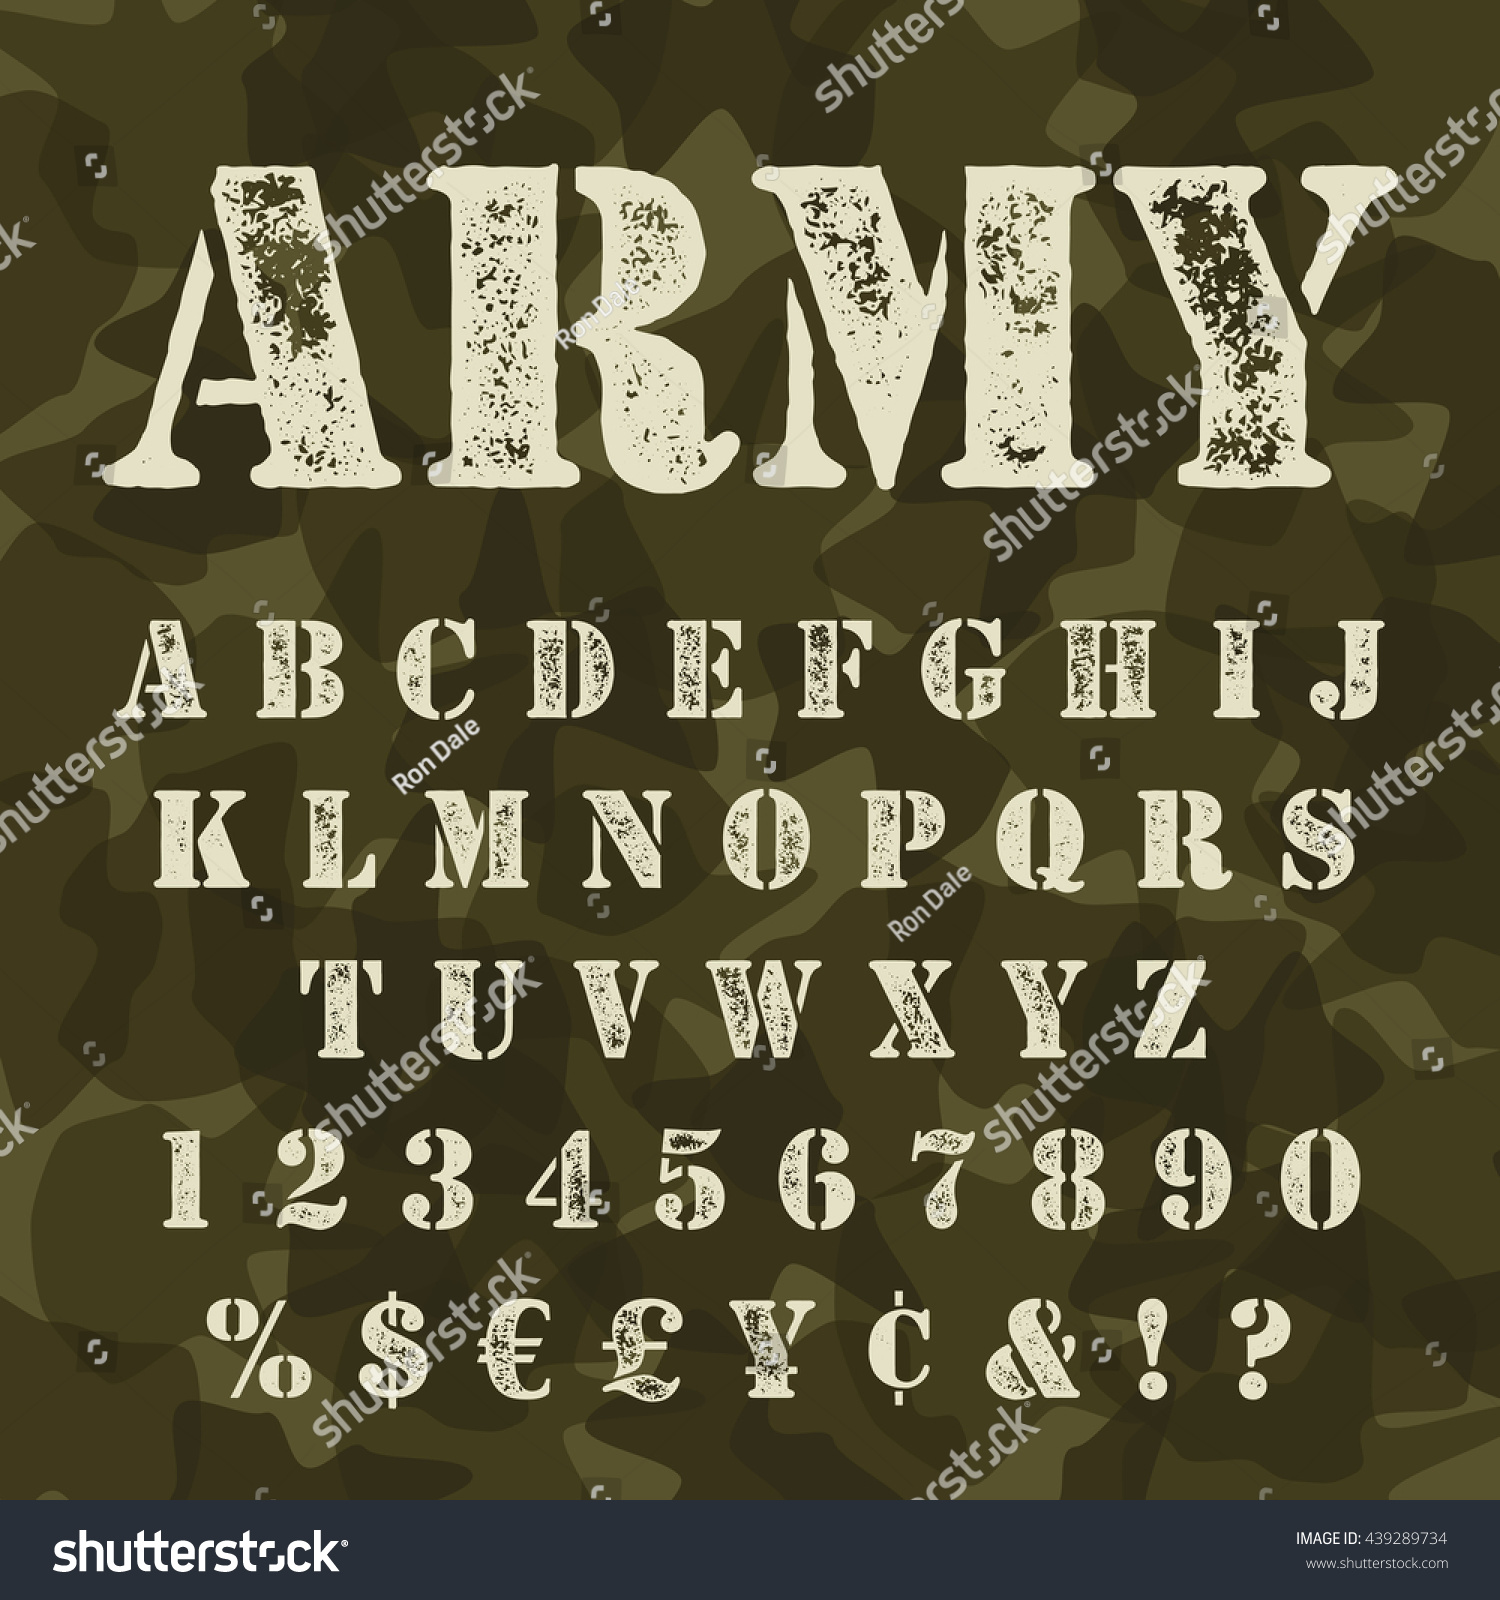 Military Stencial Alphabet Army Stencial Lettering Stock